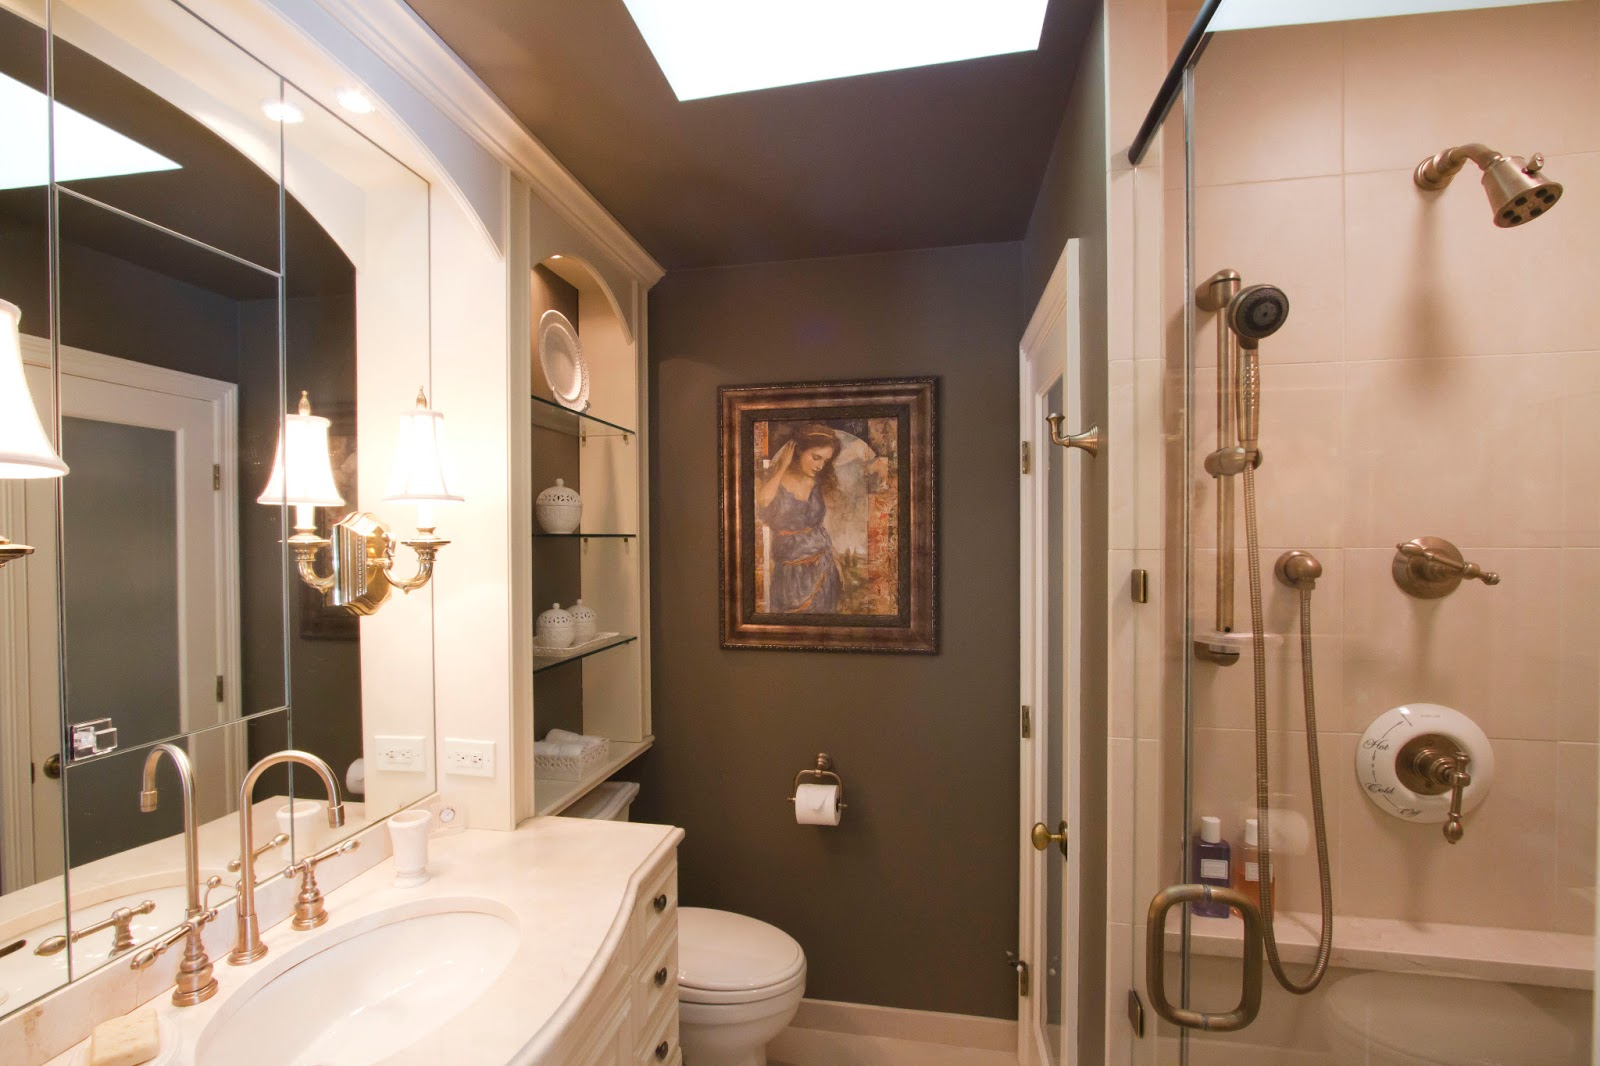 Small bathroom ideas photo gallery large and beautiful photos photo to select small bathroom - Bathroom photo desin ...